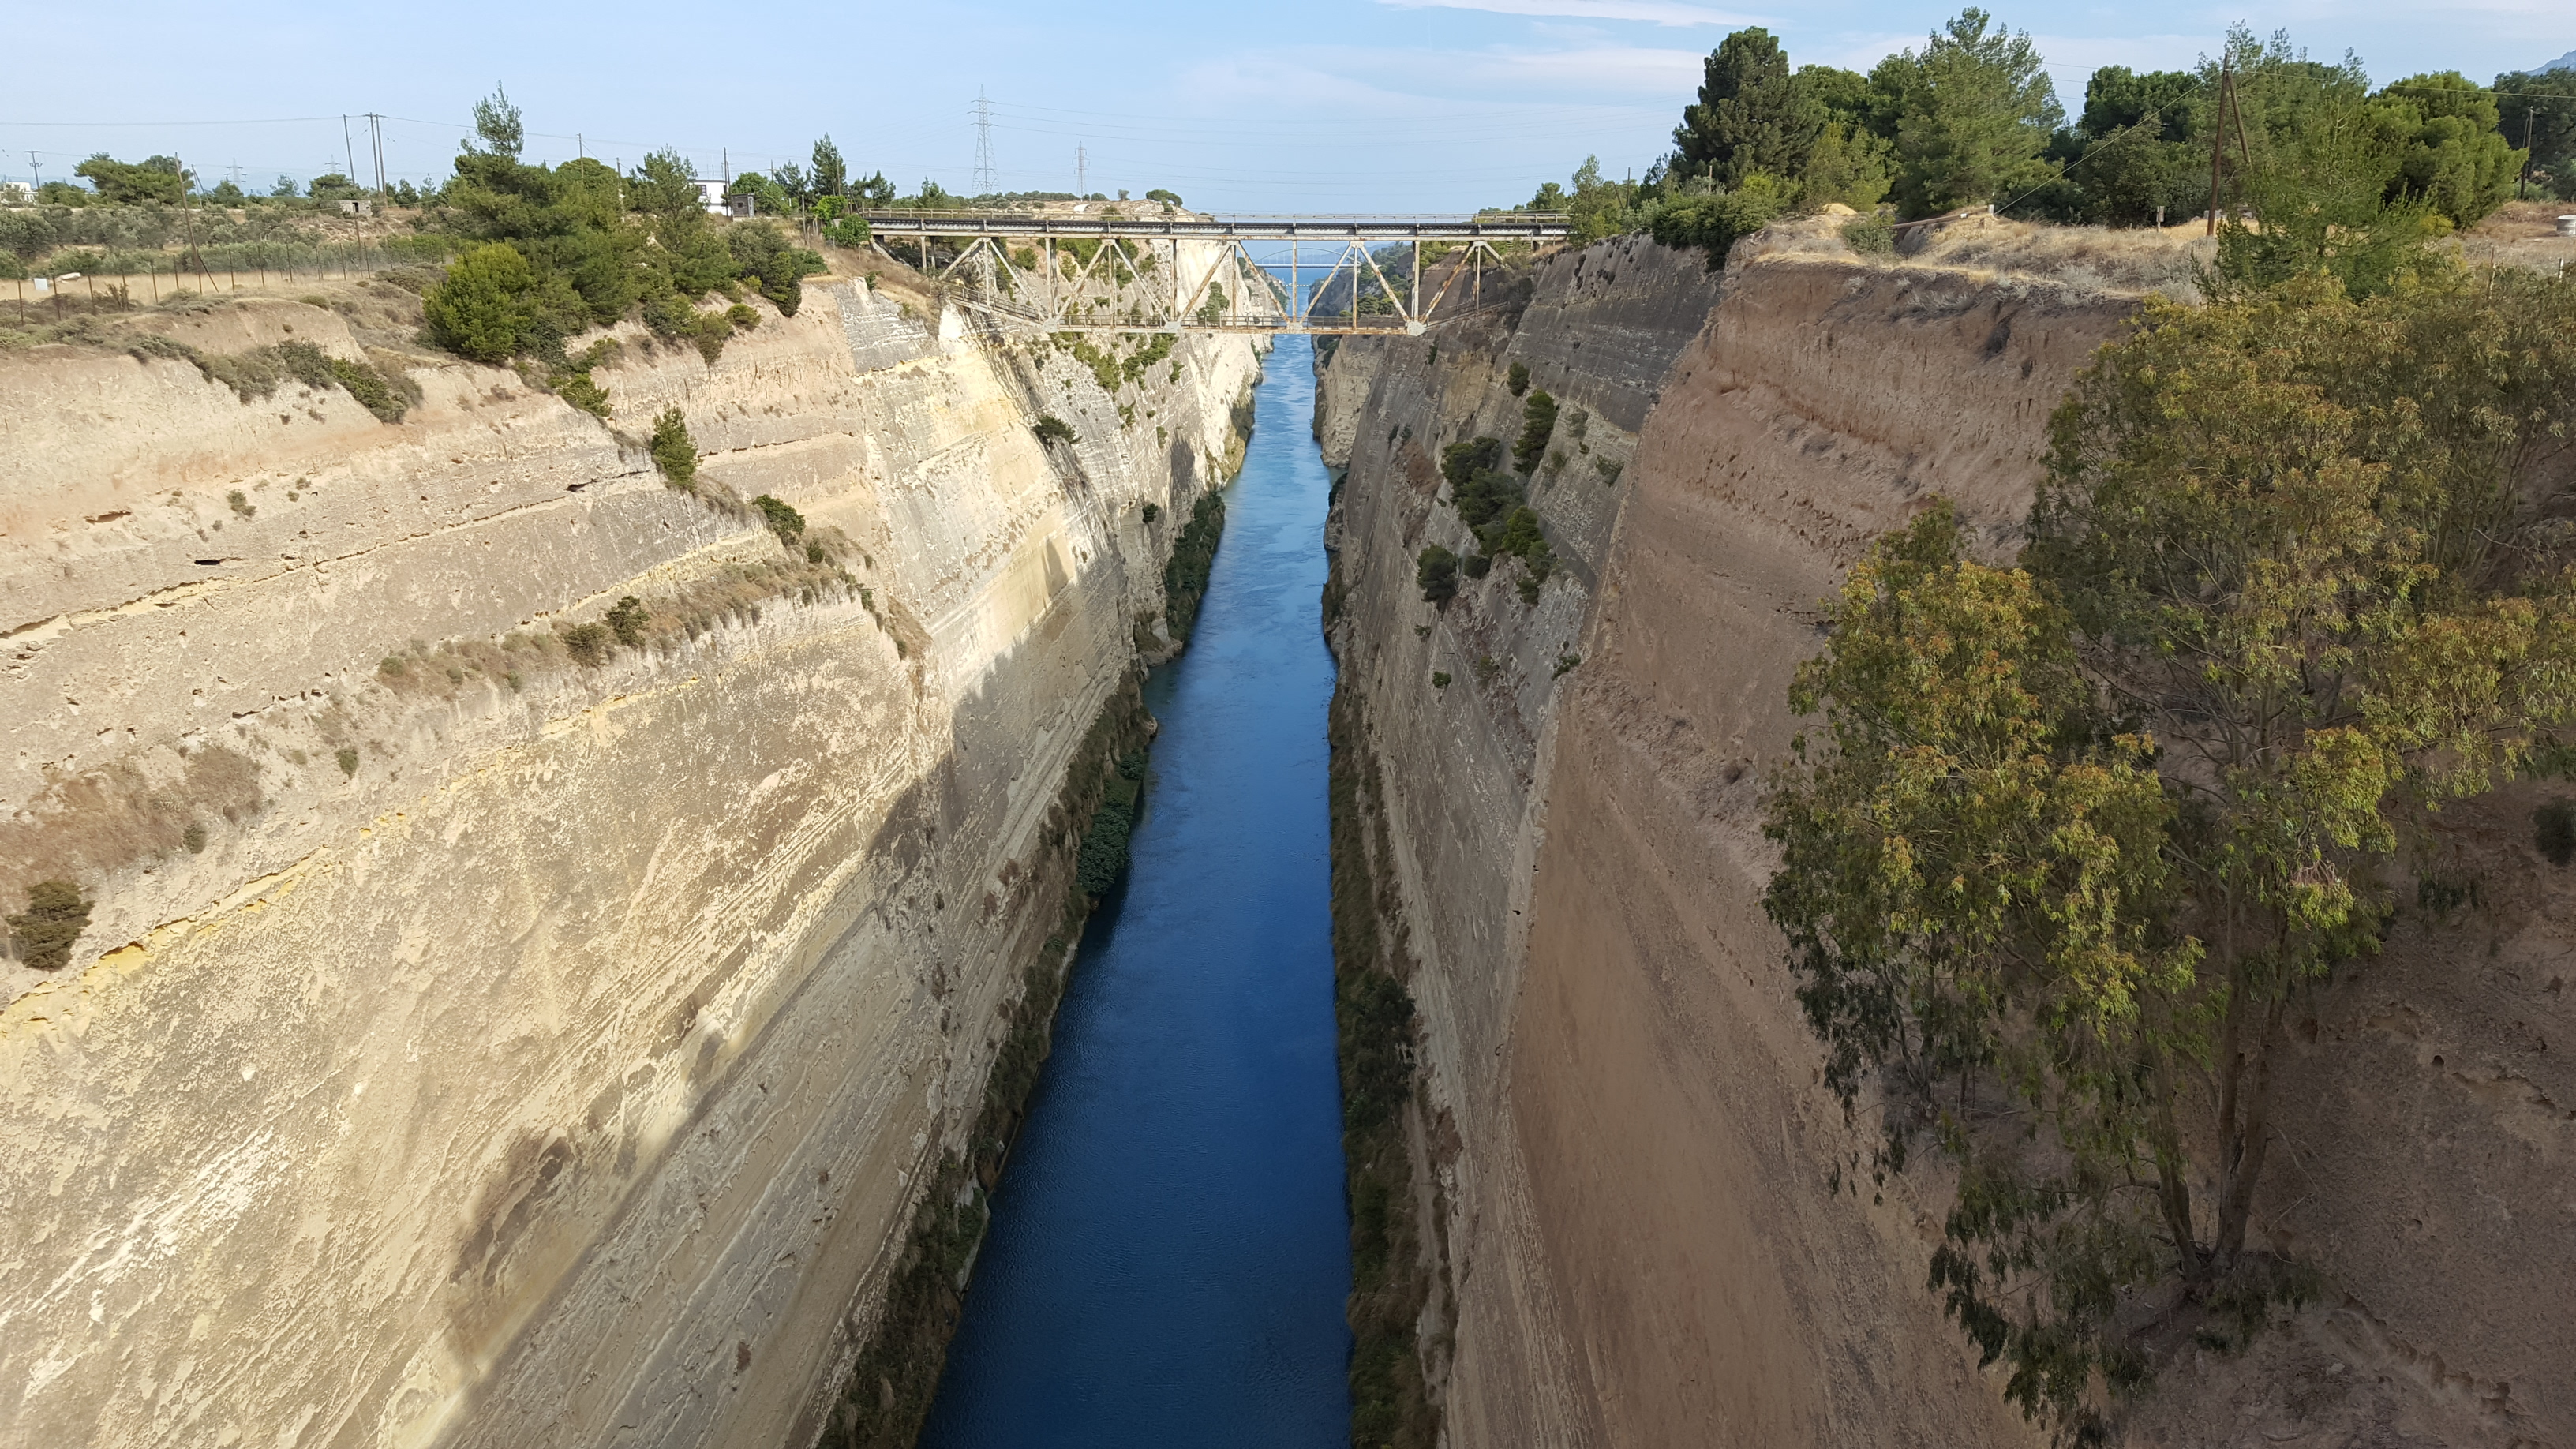 Canal on the Isthmus of Corinth Greece bunkerwritescom